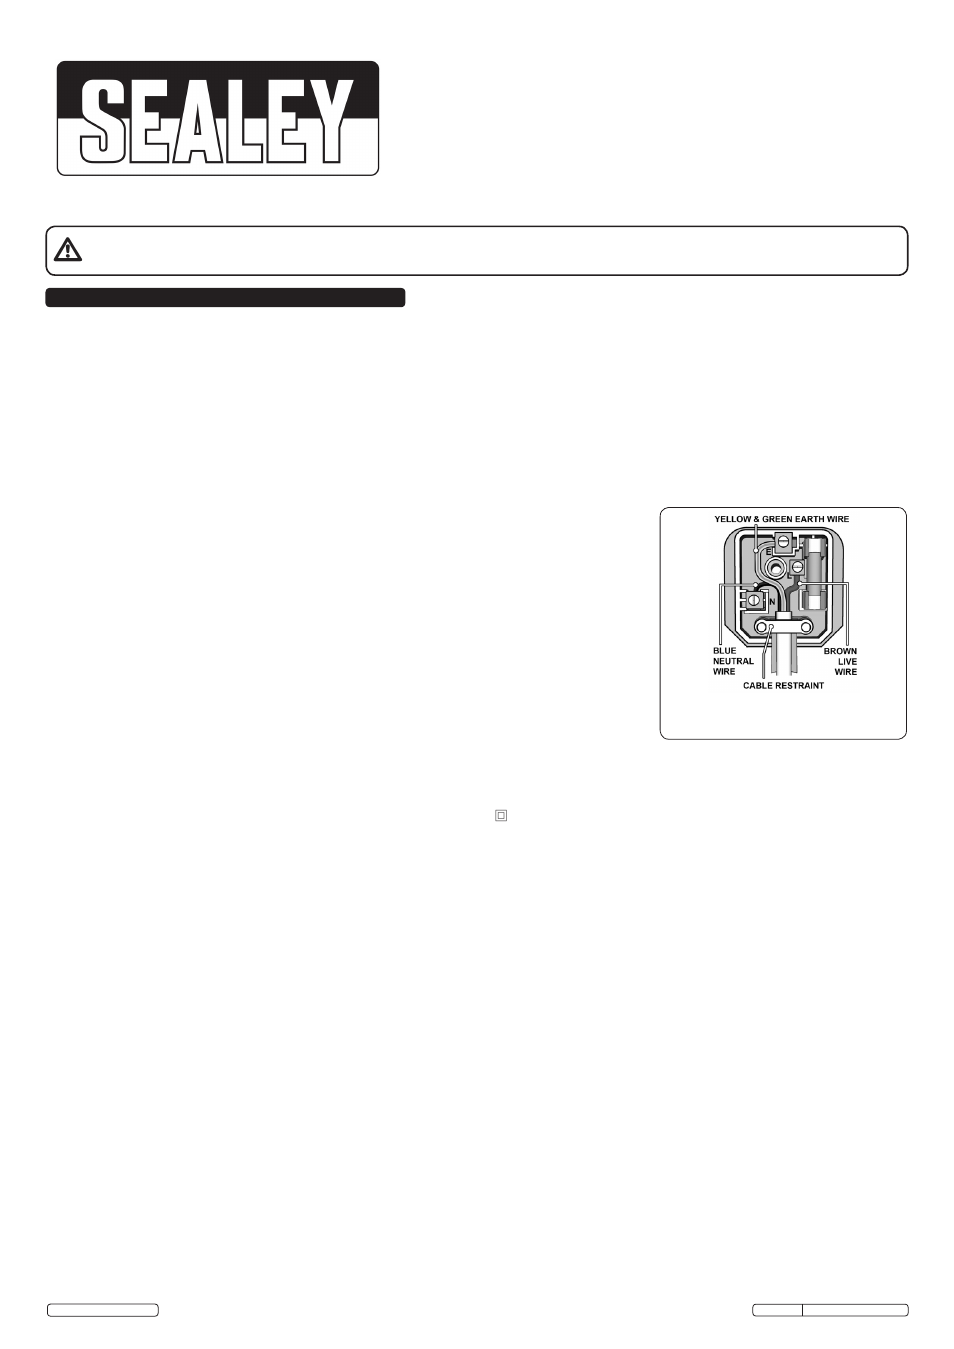 Sealey SDH20 User Manual | 4 pages